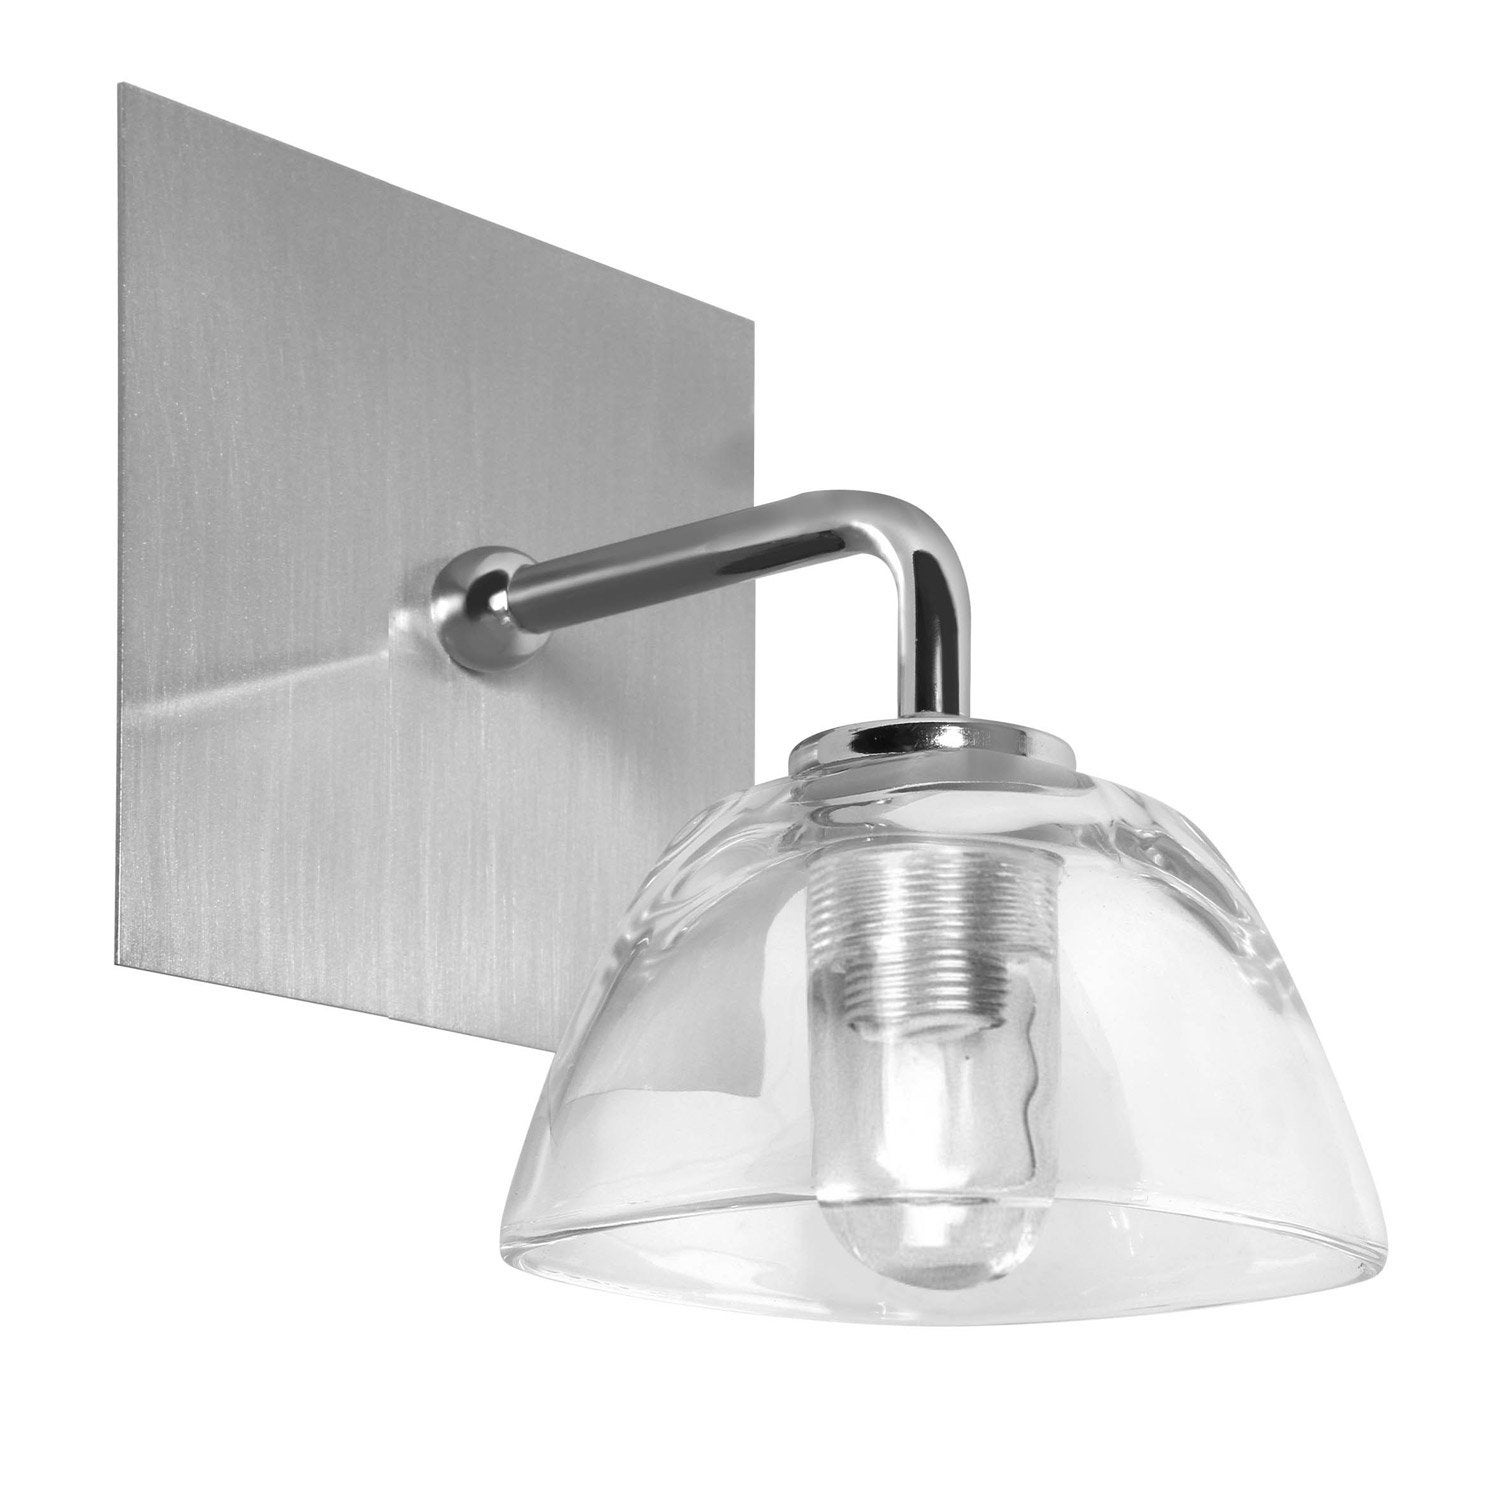 Applique fixer mila halog ne 1 x 28 w g9 chrome - Applique murale salle de bain leroy merlin ...